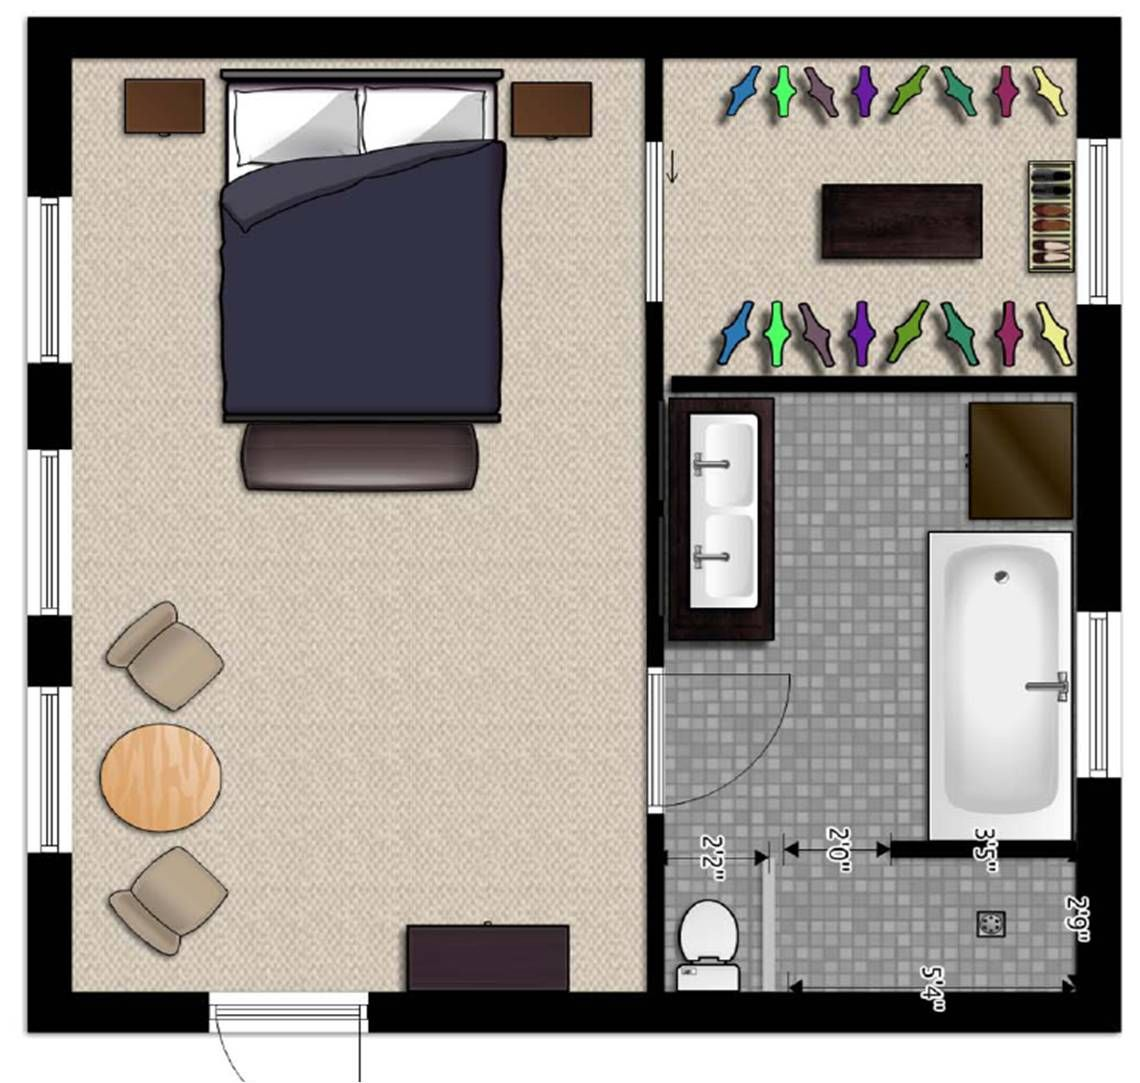 master bedroom addition floor plans and here is the proposed master bedroom addition floor plans and here is the proposed floor plan for the new